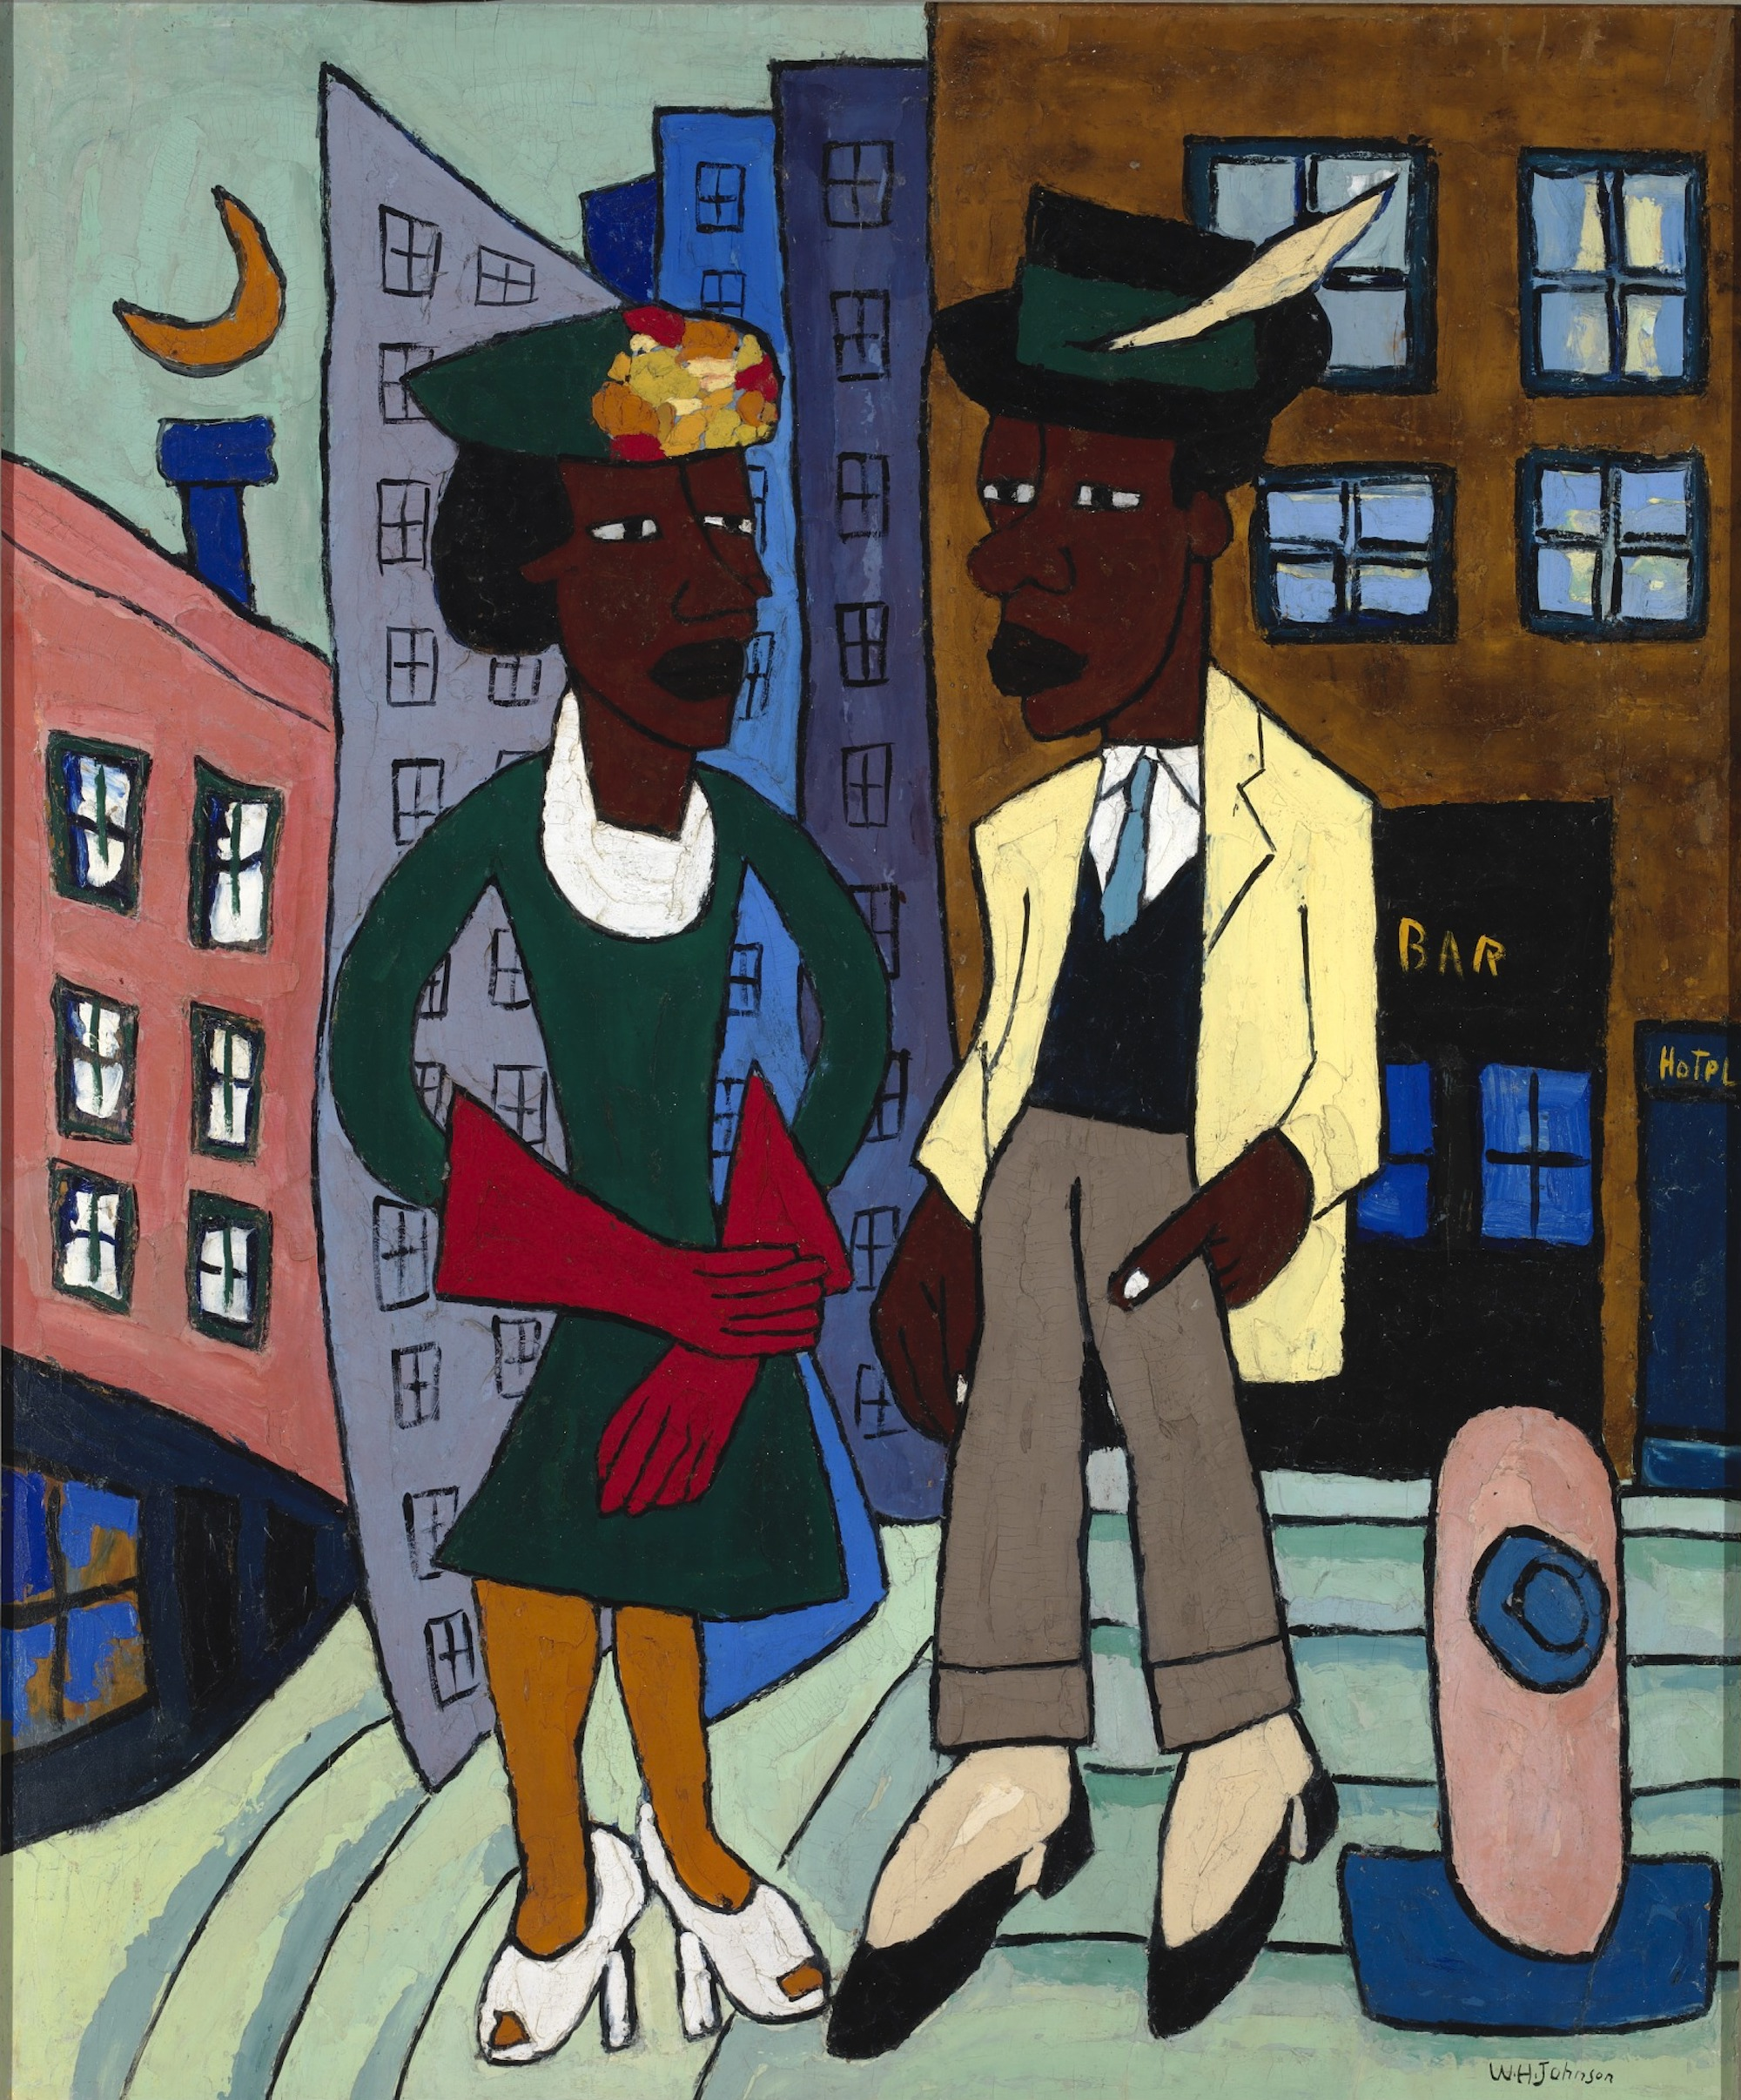 A William Johnson painting of two Black Americans, a man and a woman, in 1930s Harlem dressed in formal and stylish clothing for a night out. Behind them you can see tall buildings and a crescent moon.